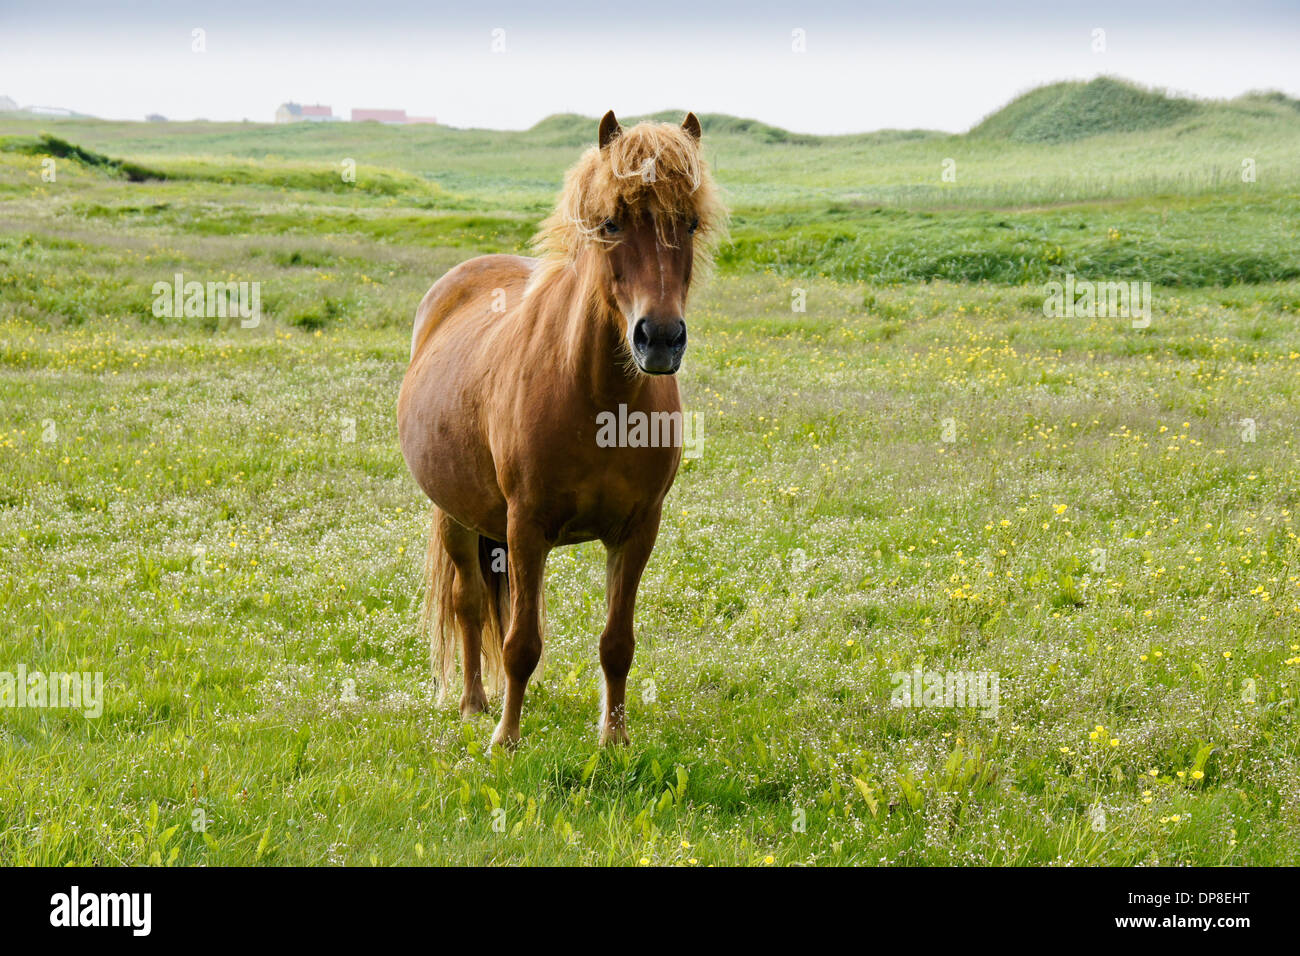 Icelandic horse grazing in field, Iceland - Stock Image